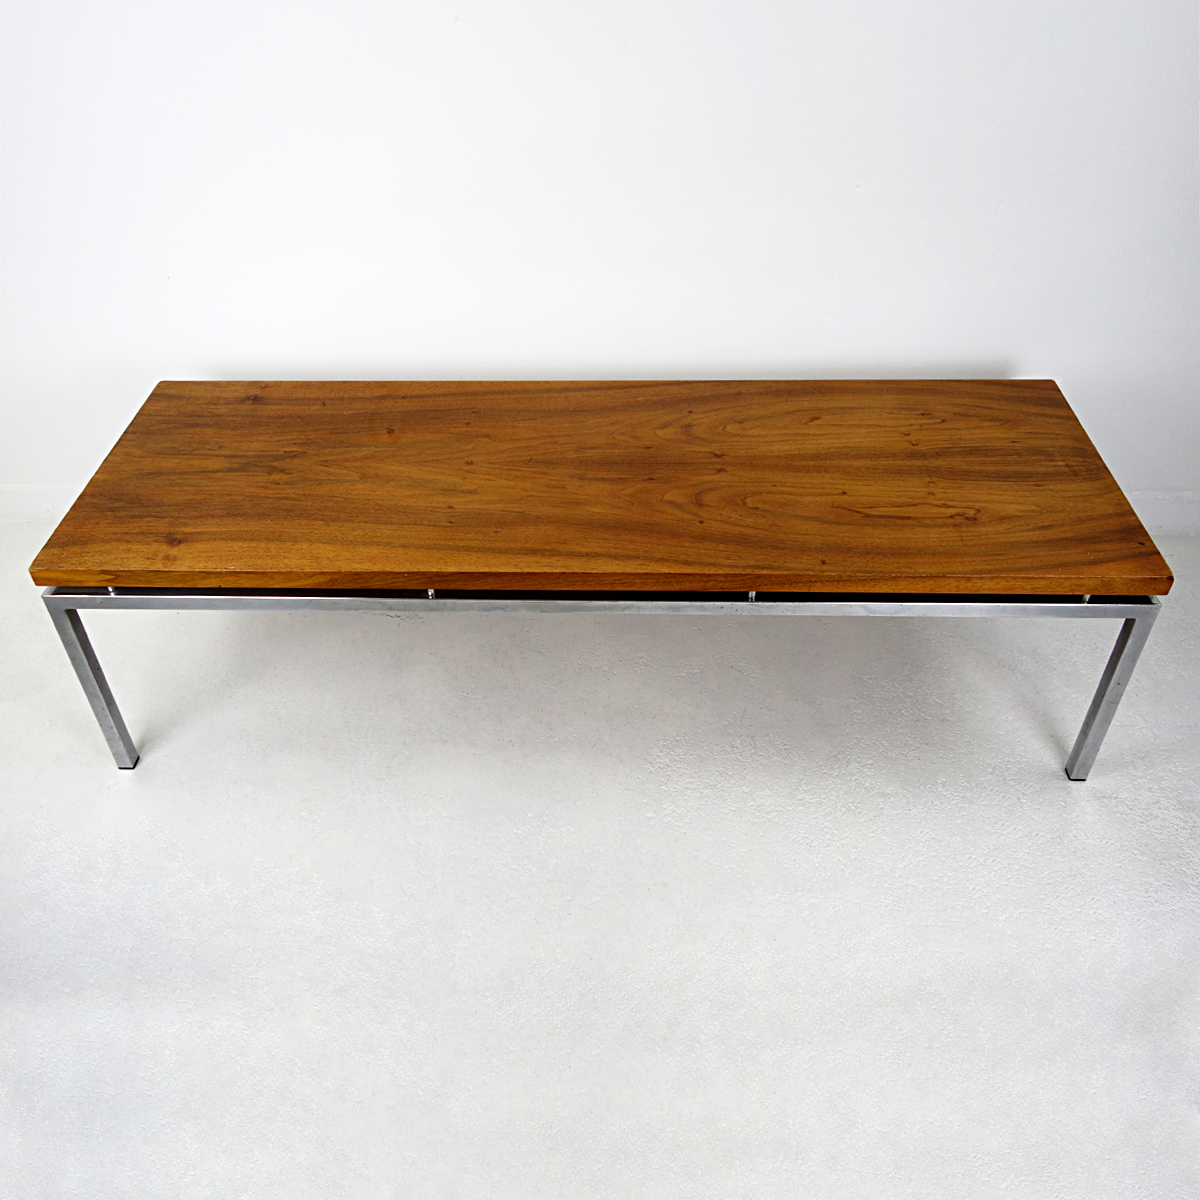 Long Midcentury Coffee Table With Chrome Frame And Teak Wood Top Doctor Decorum